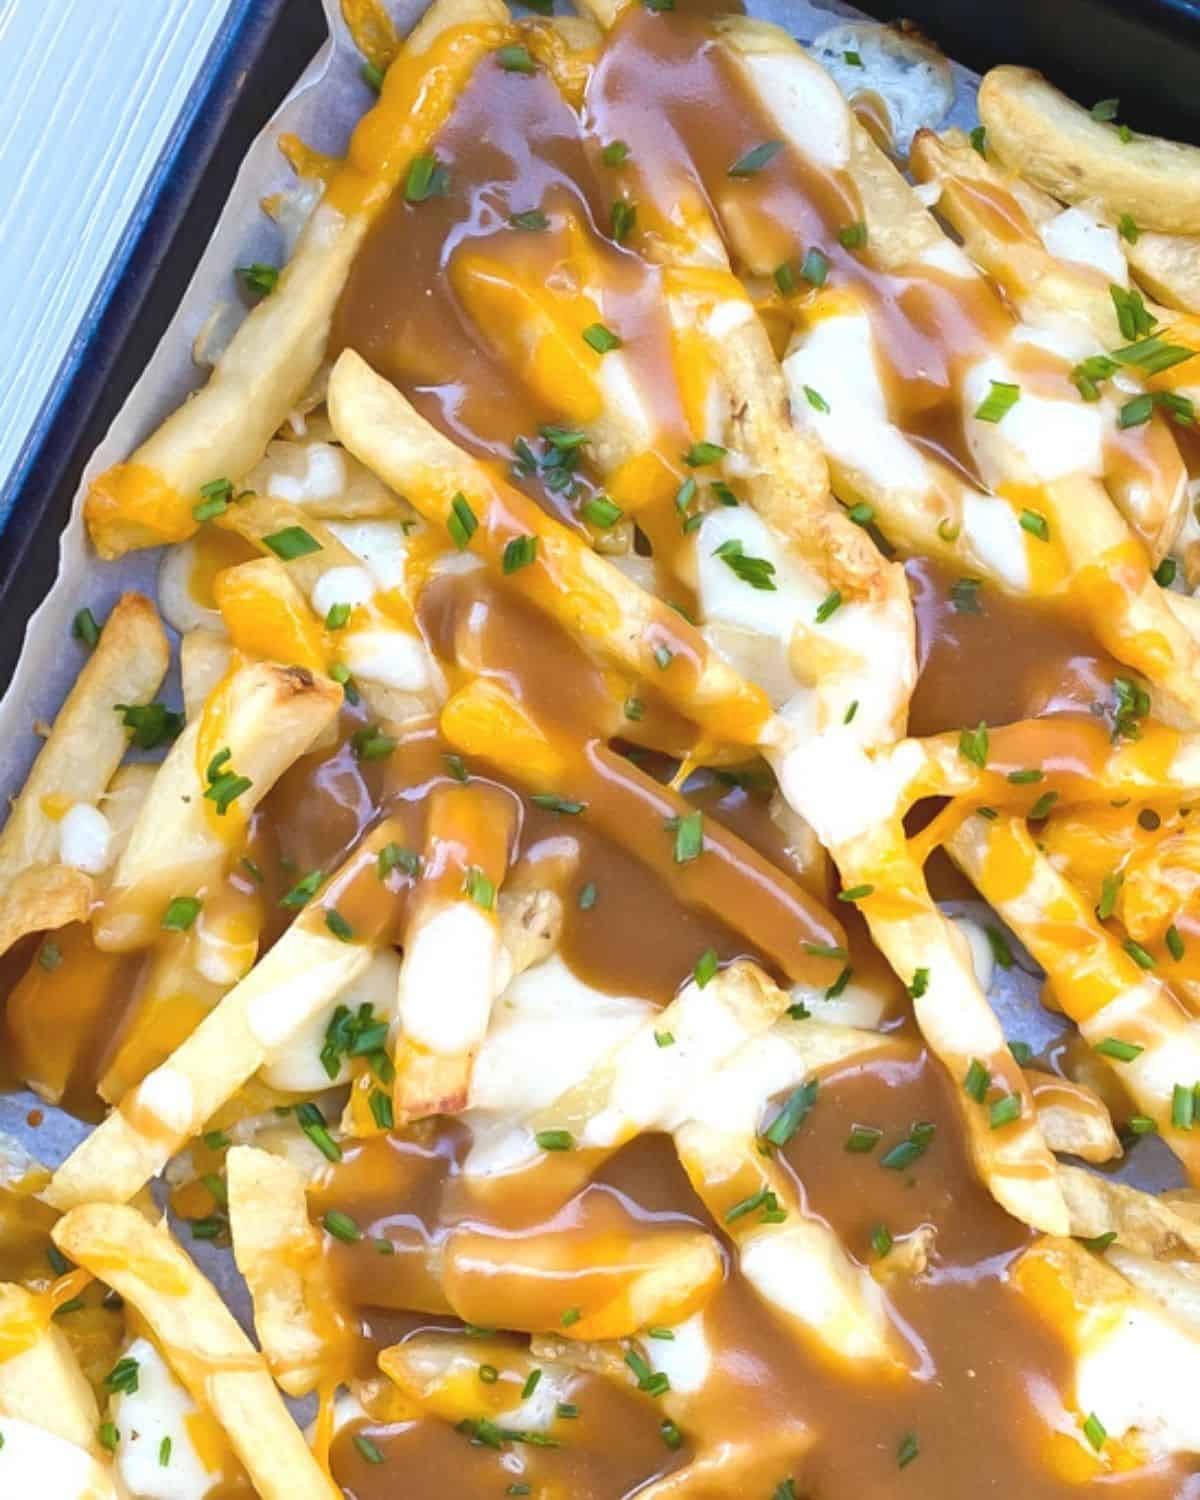 disco fries on a baking sheet smothered with gravy and mozzarella cheese.